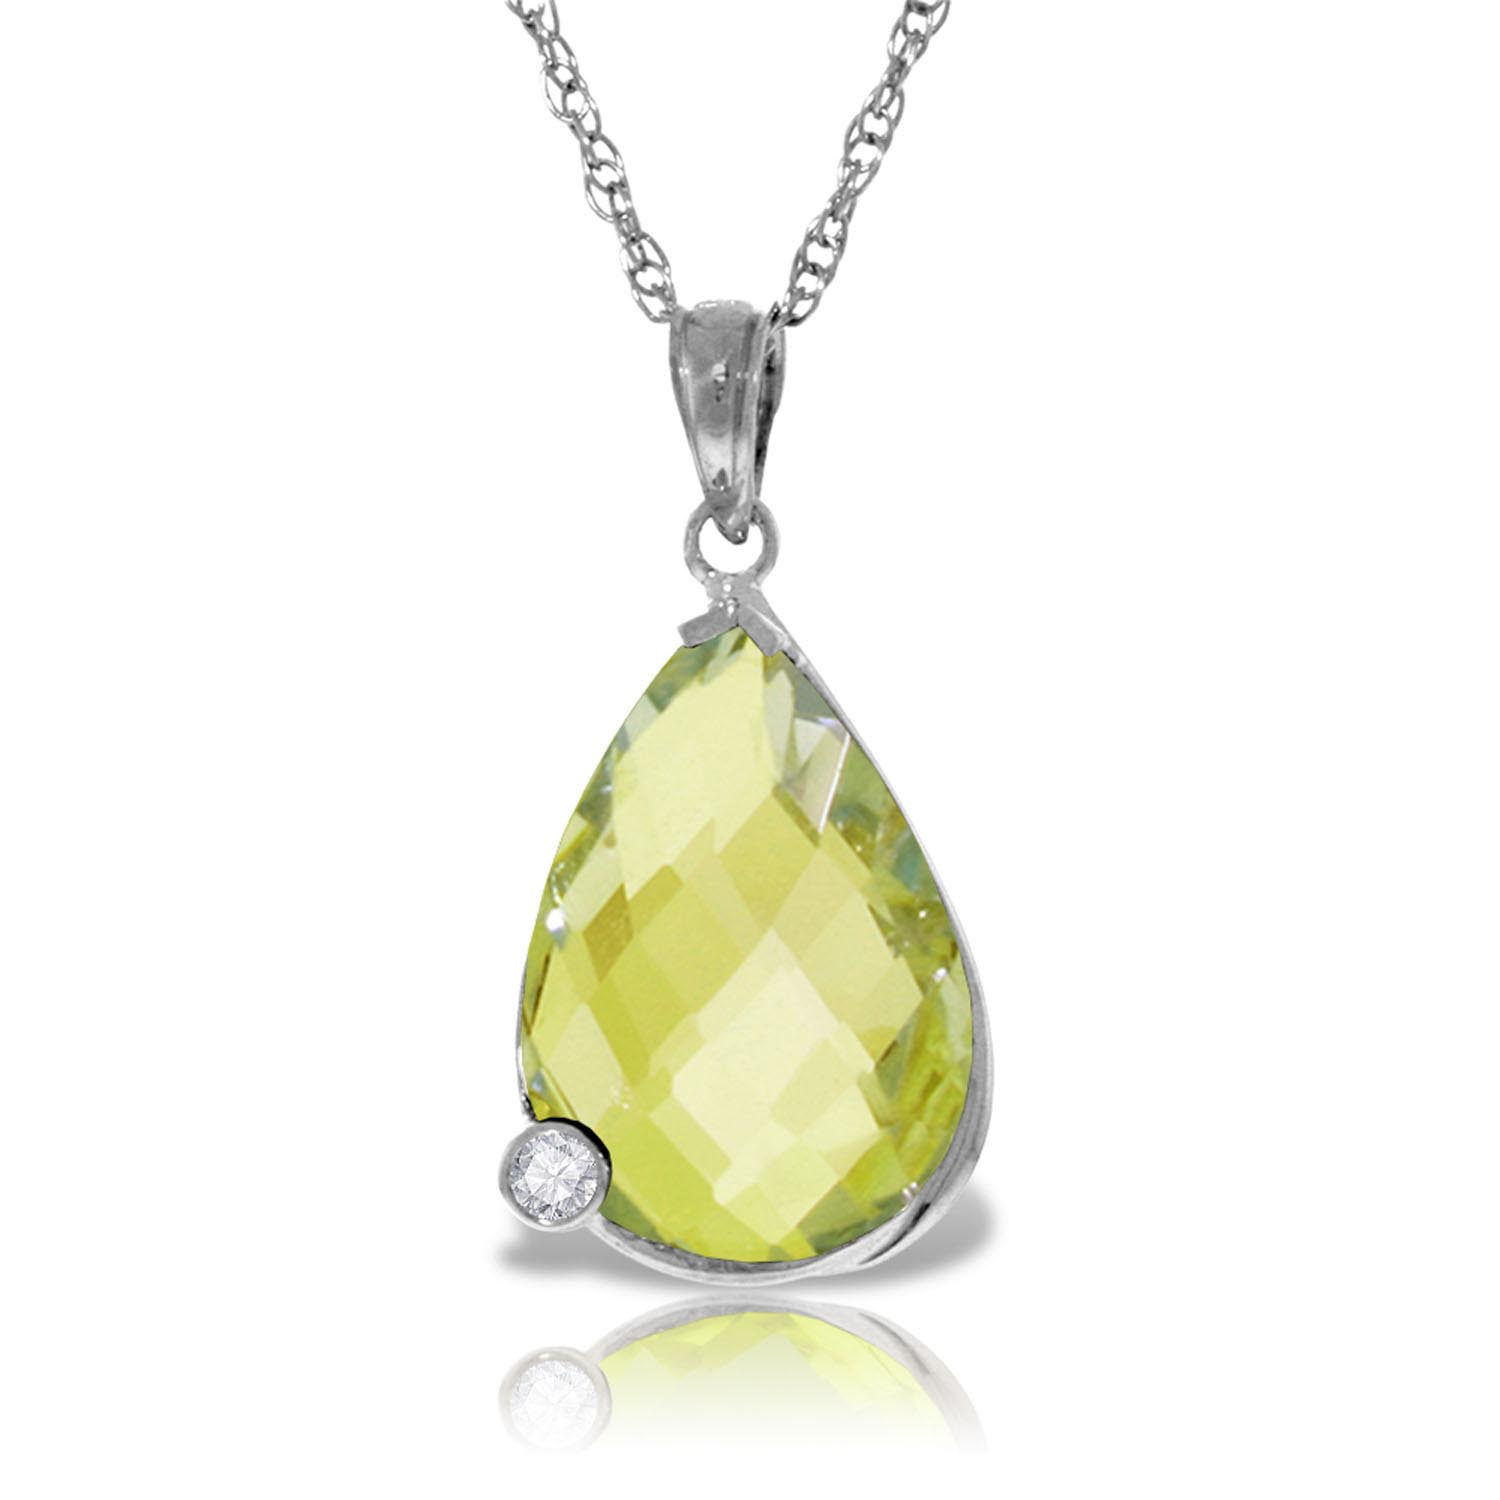 Bargain Lemon Quartz and Diamond Chequer Pendant Necklace 5.0ct in 9ct White Gold Stockists